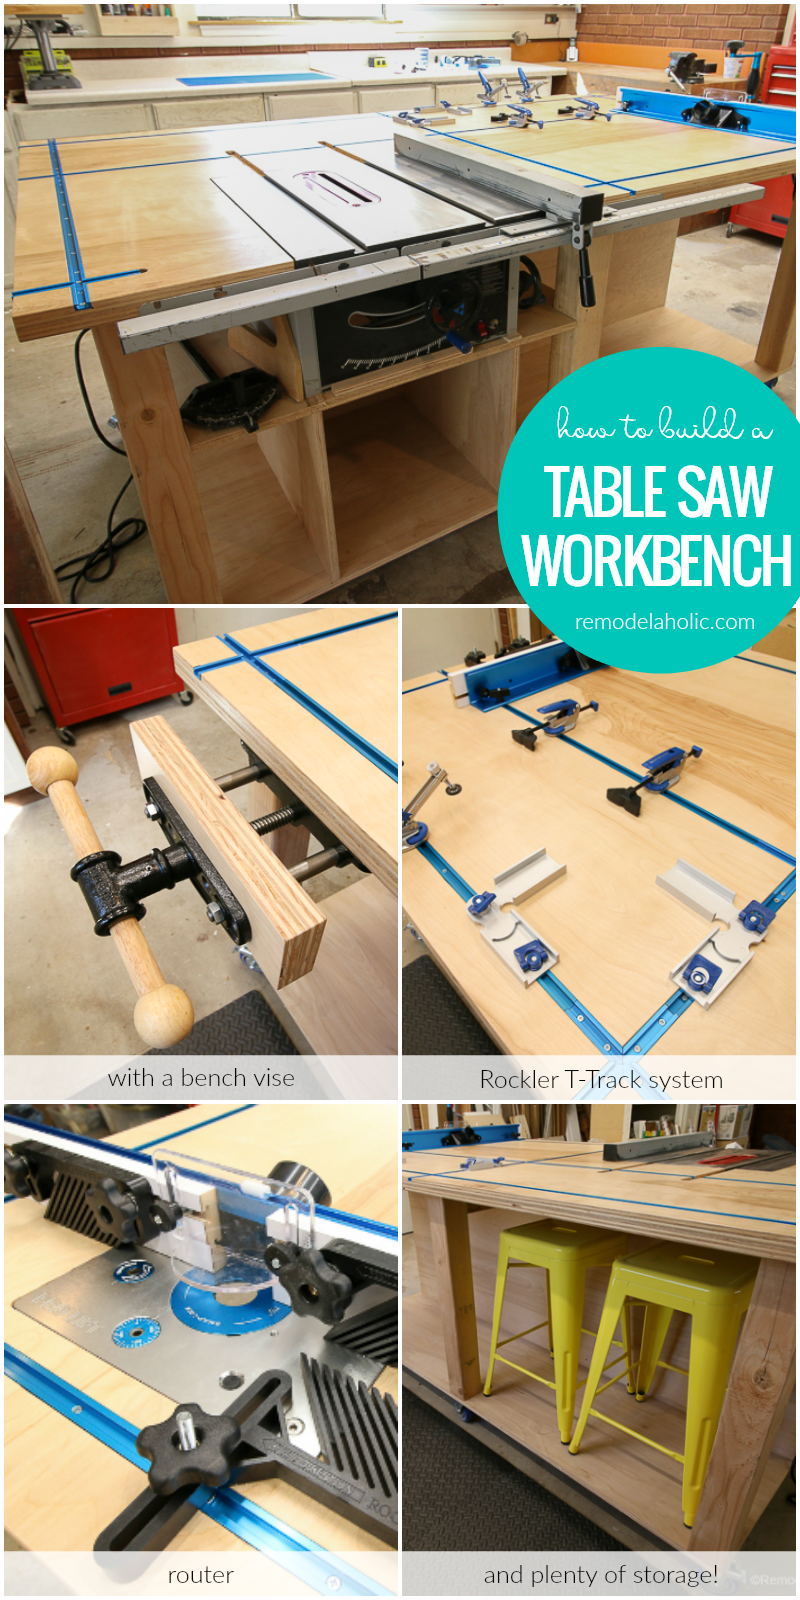 Pleasing Build A Table Saw Workbench With A Bench Vise Rockler T Frankydiablos Diy Chair Ideas Frankydiabloscom